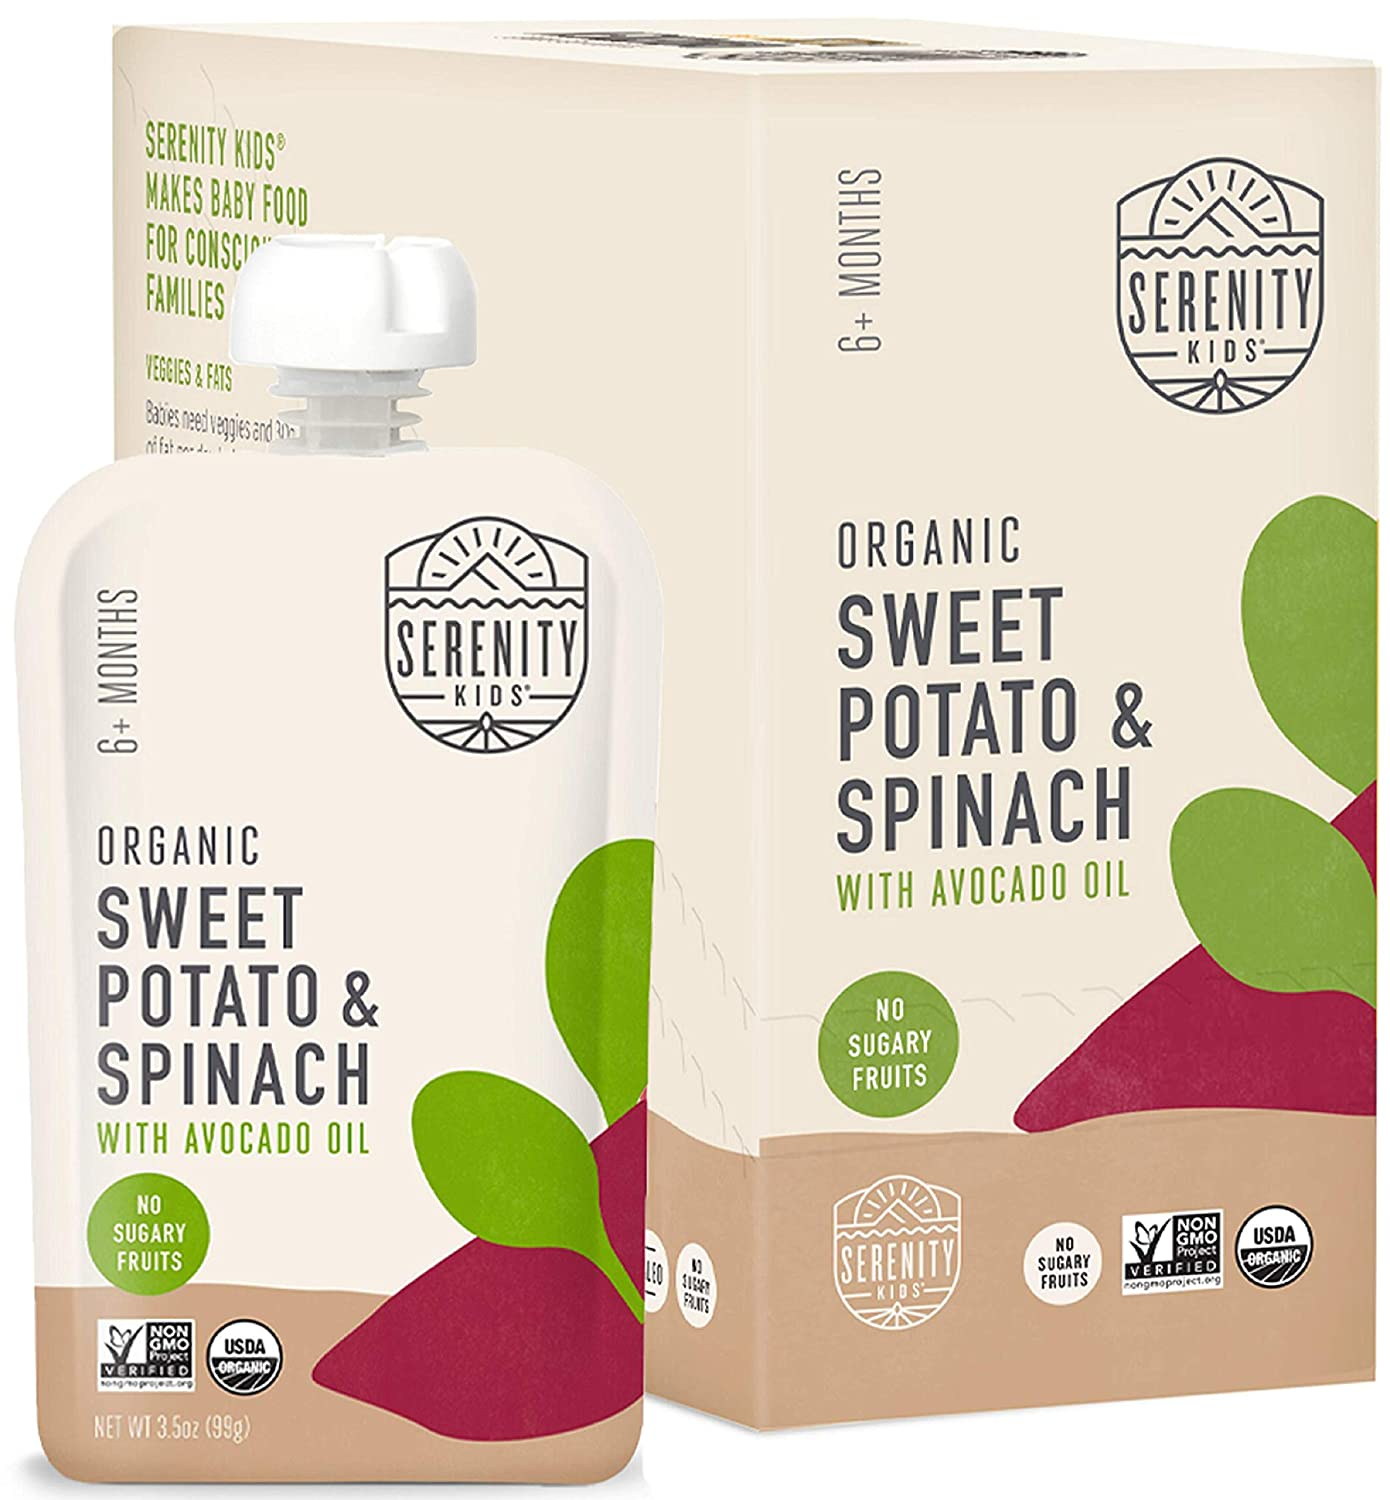 Serenity Kids Baby Food, Organic Sweet Potato and Spinach with Avocado Oil, For 6+ Months, 3.5 Ounce Pouch (6 Pack)